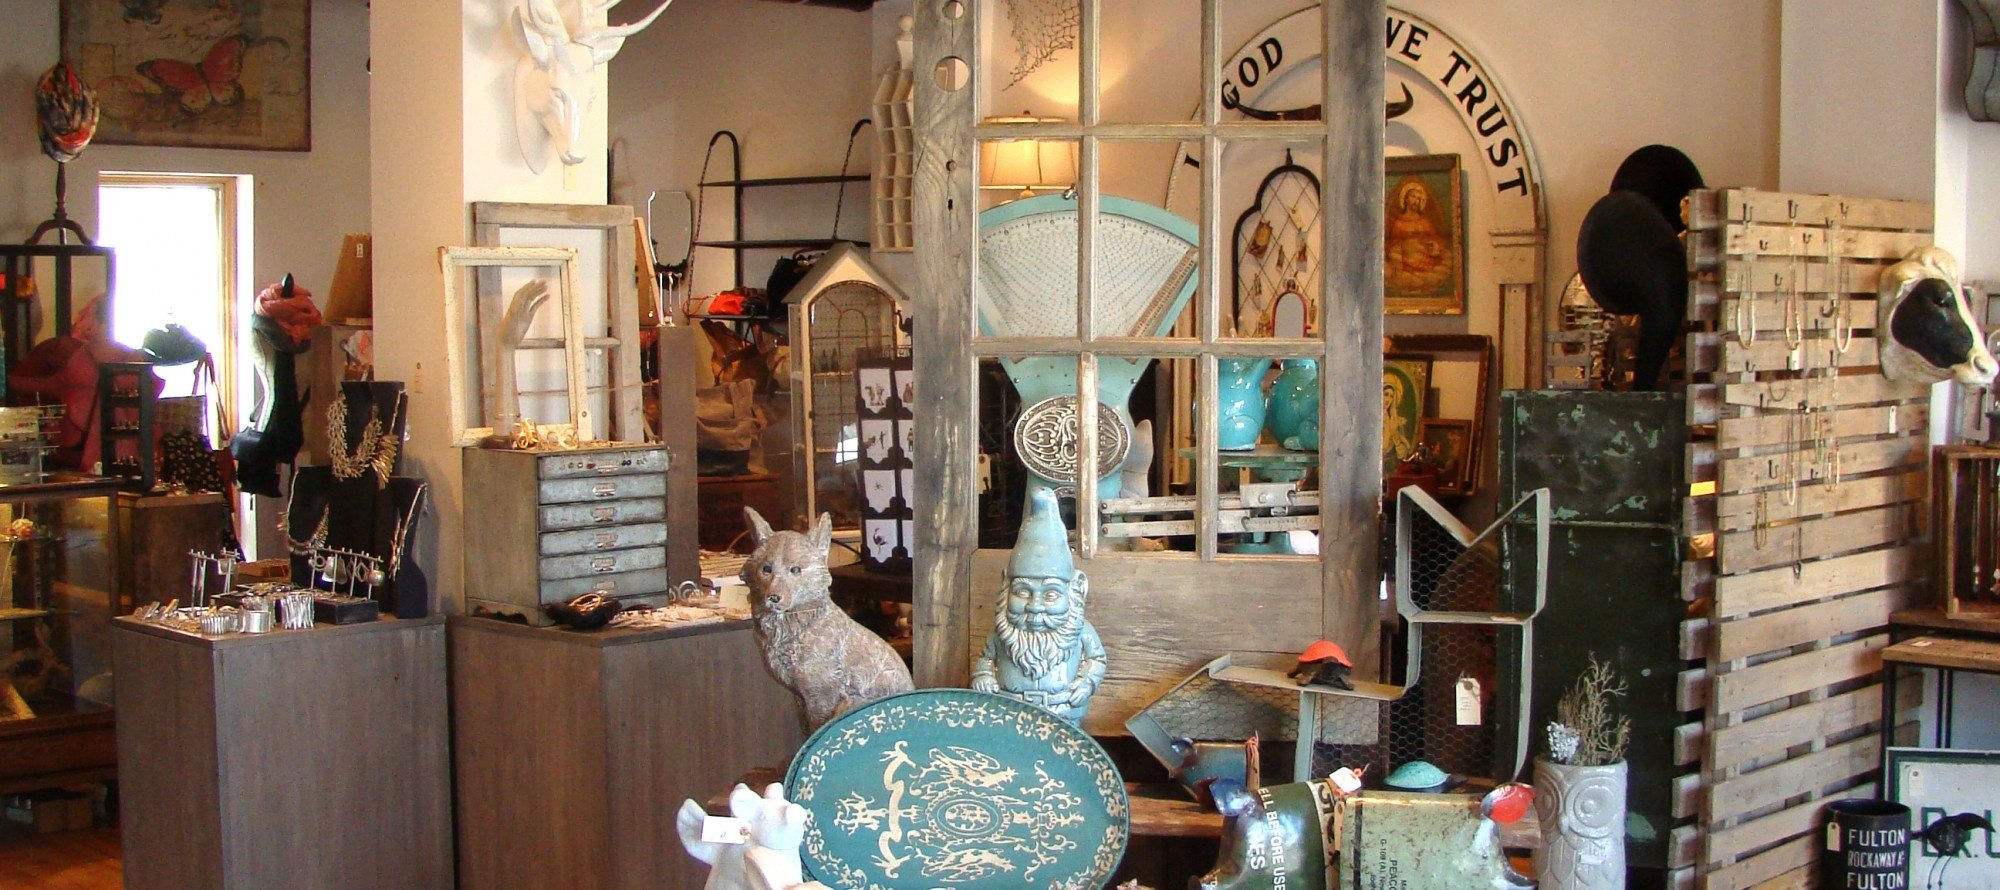 STORE PROFILE: Curiosity shop Wunderkammer expands to feature more home decor, jewellery, and other quirky treasures